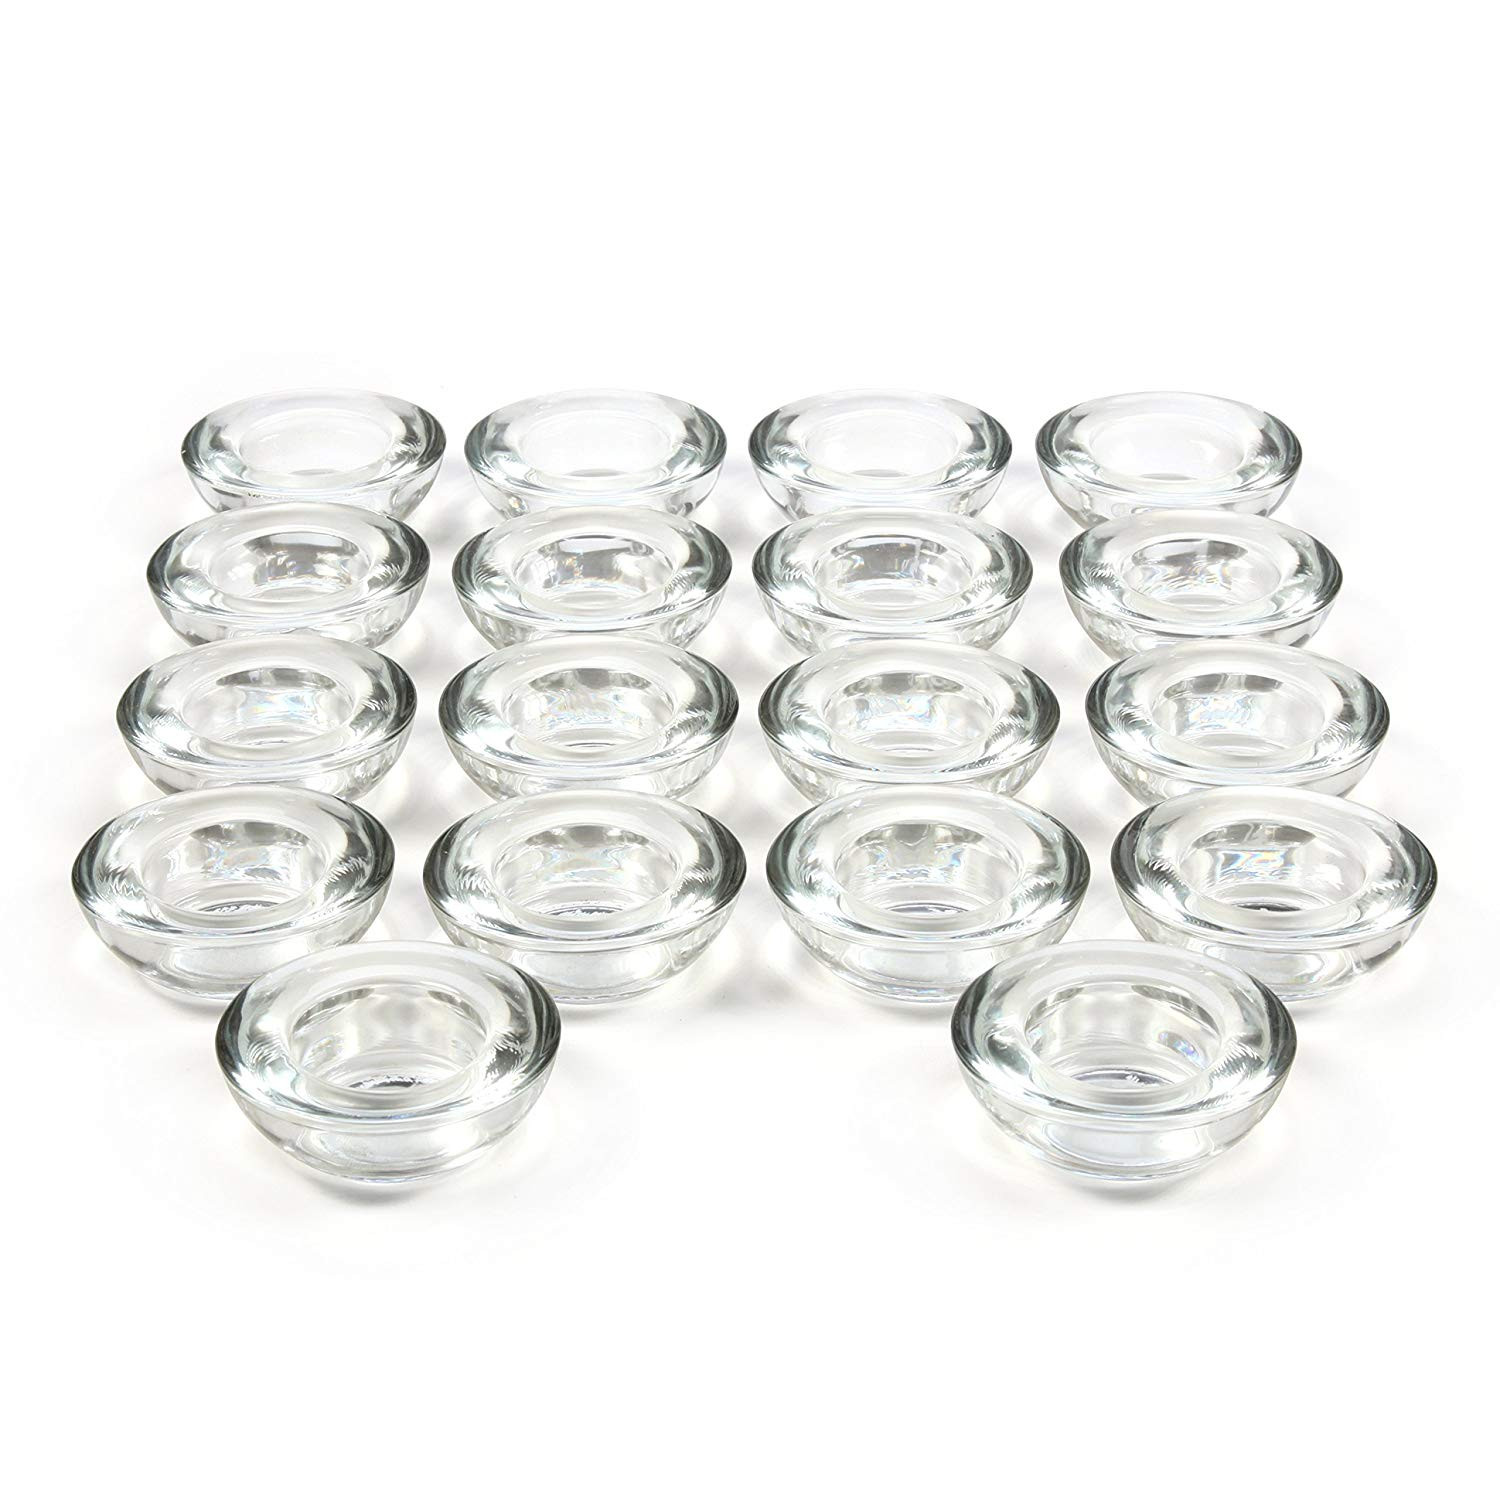 18 inch glass vase of amazon com hosley set of 18 clear glass led tea light holders 3 throughout amazon com hosley set of 18 clear glass led tea light holders 3 diameter ideal gift for weddings party spa reiki meditation votive candle gardens